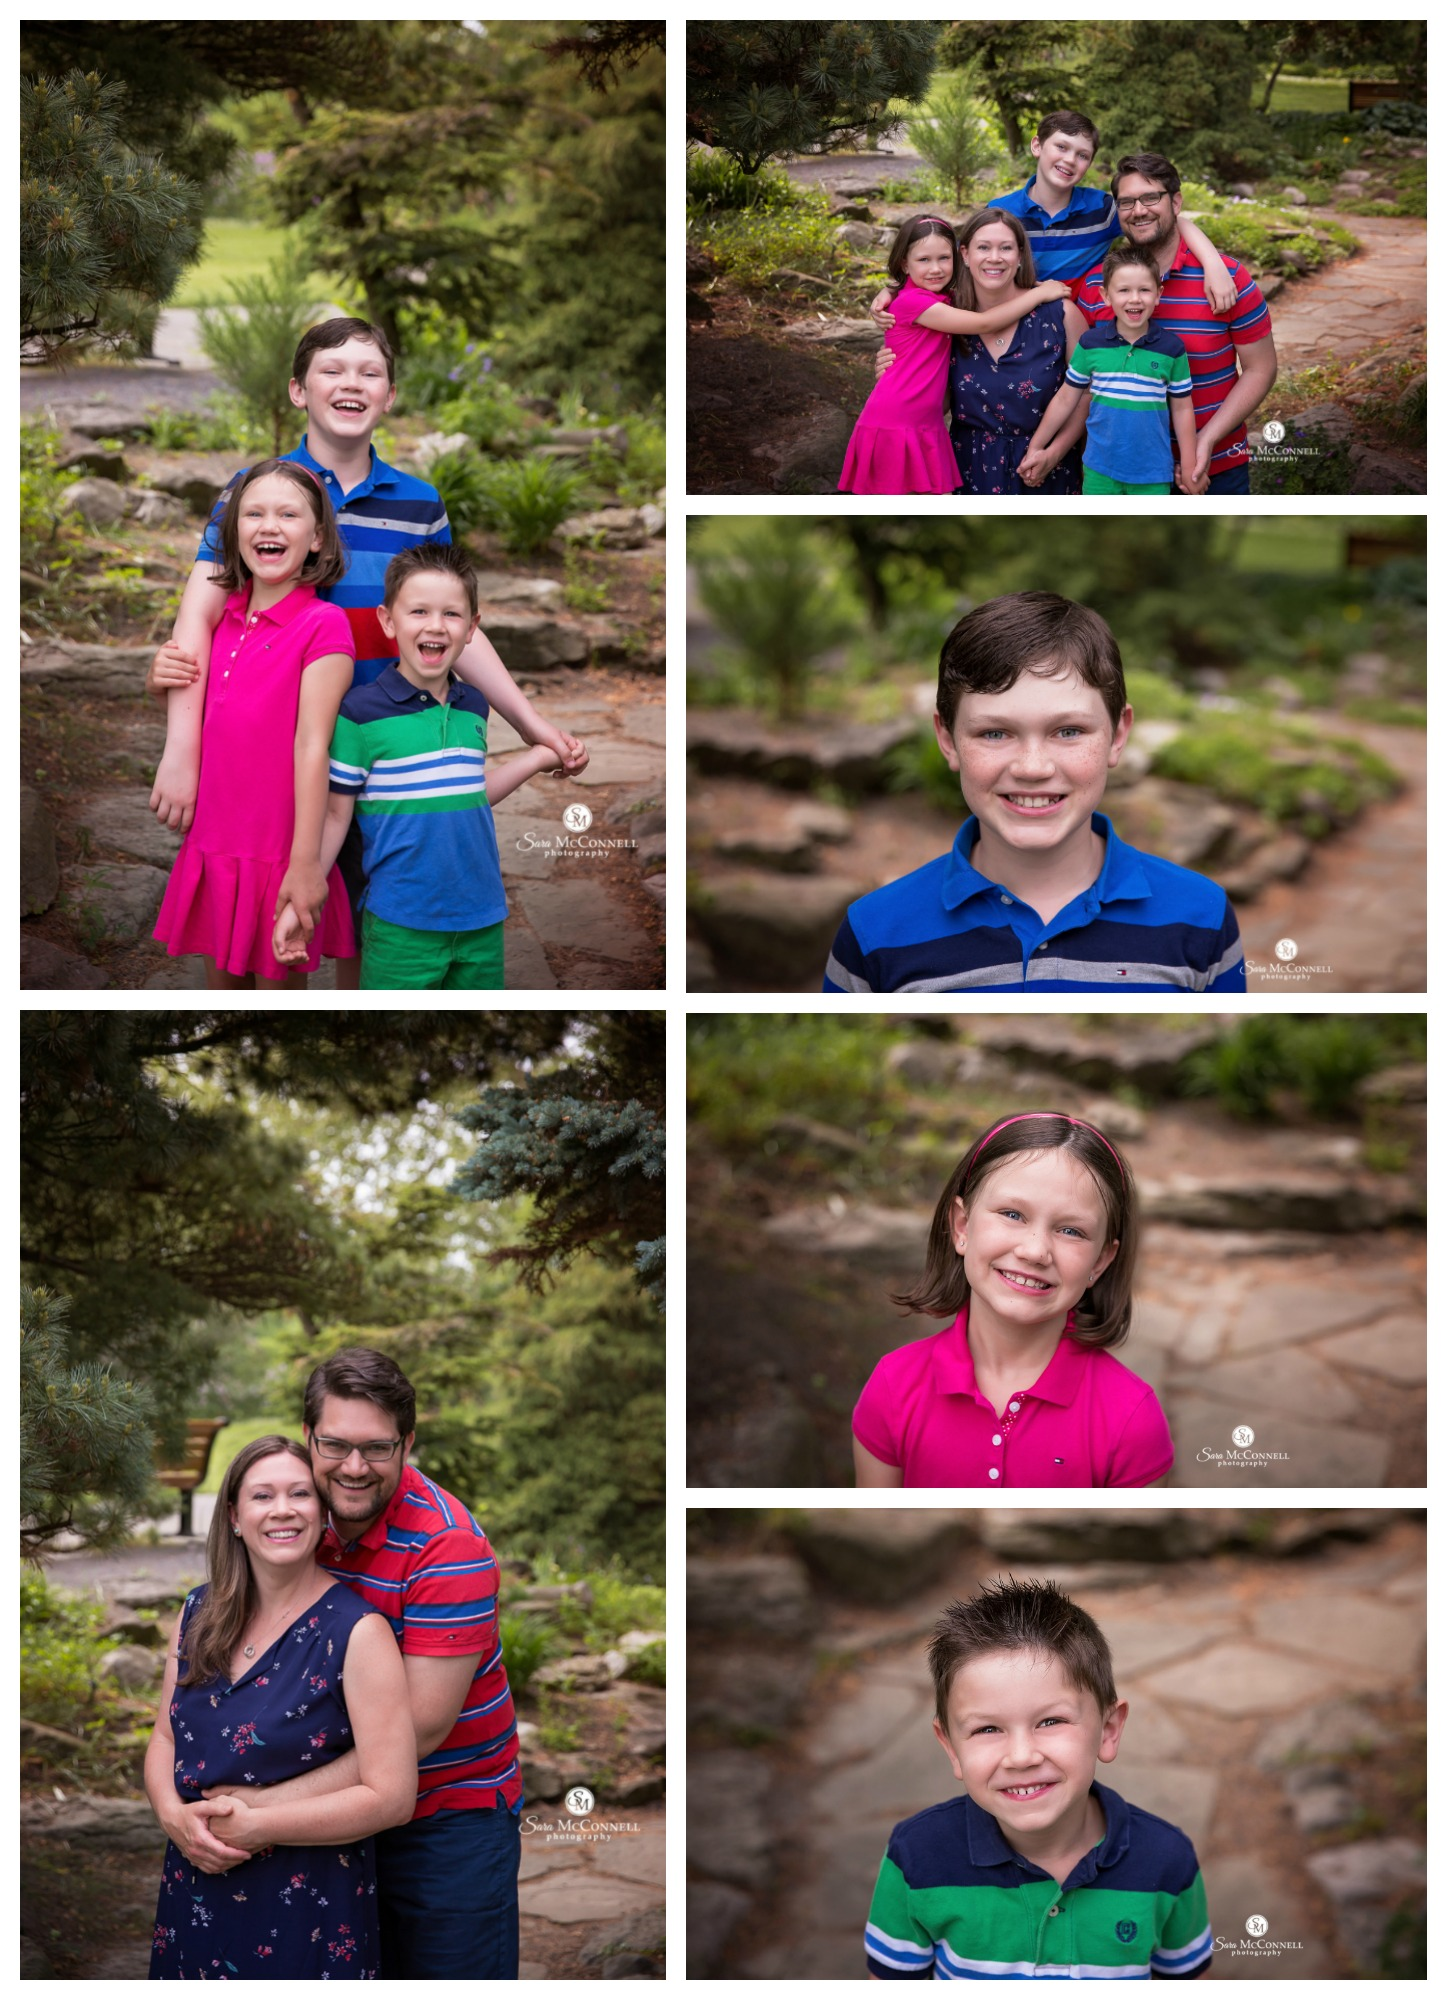 Ottawa Family Photos in the Spring by Sara McConnell Photography